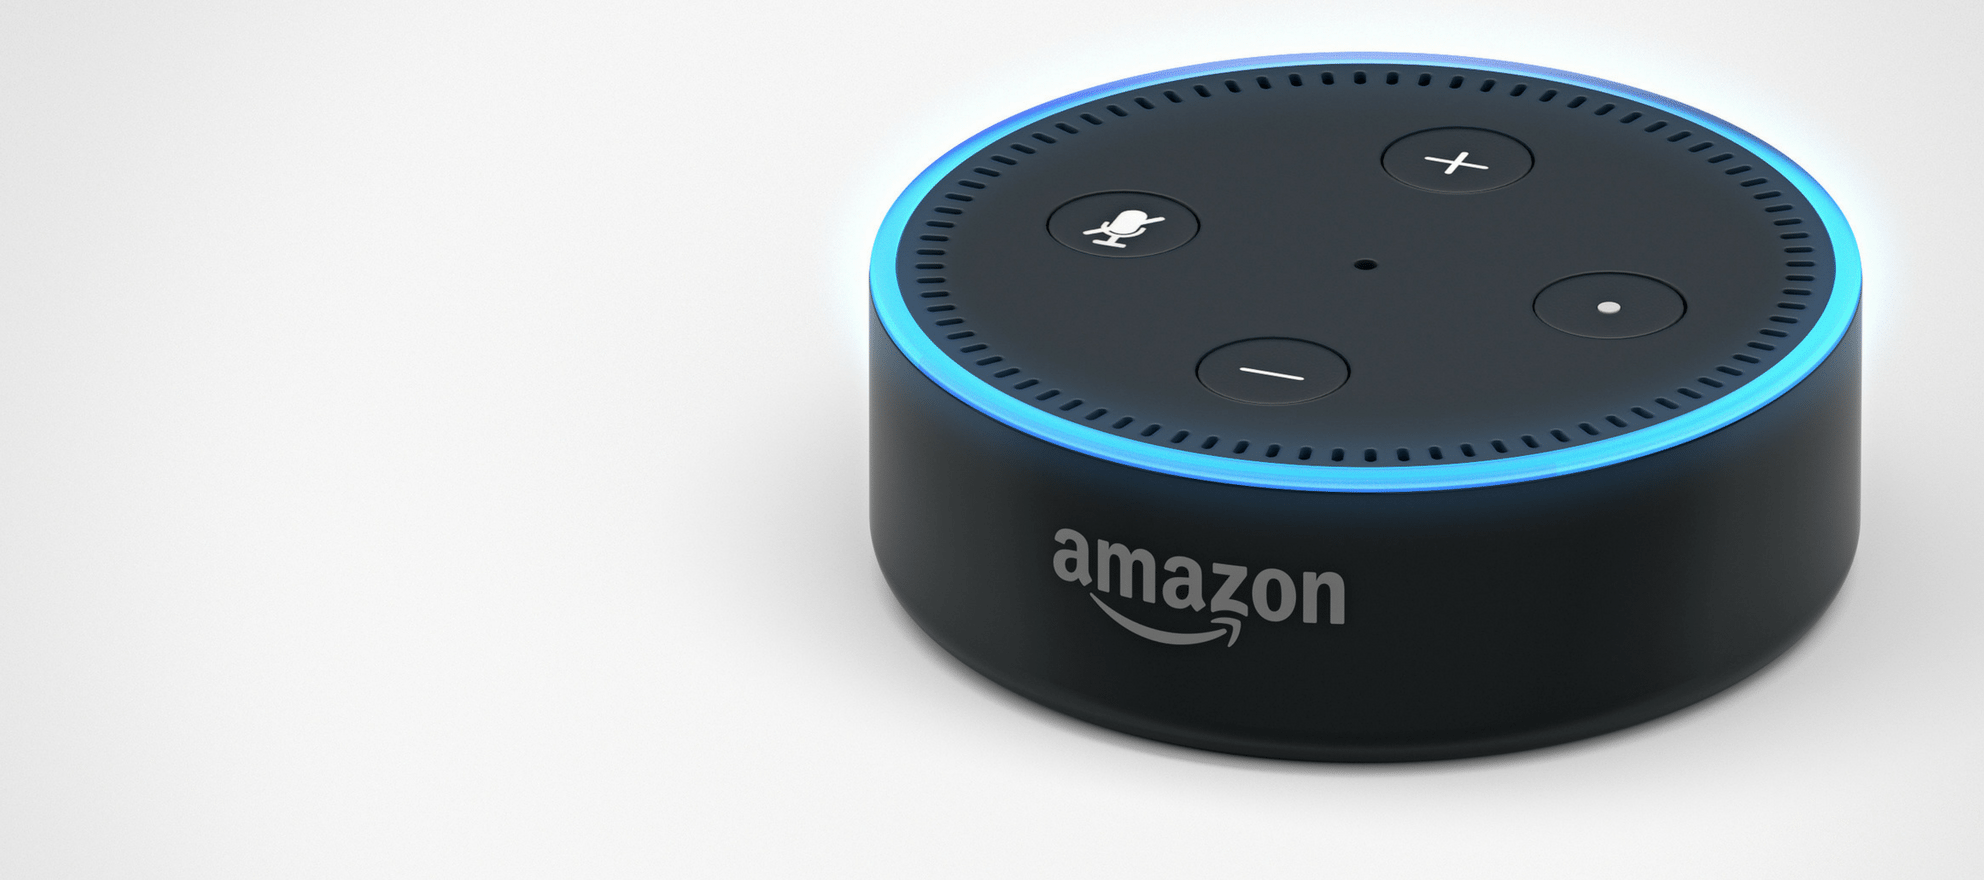 coldwell banker amazon alexa